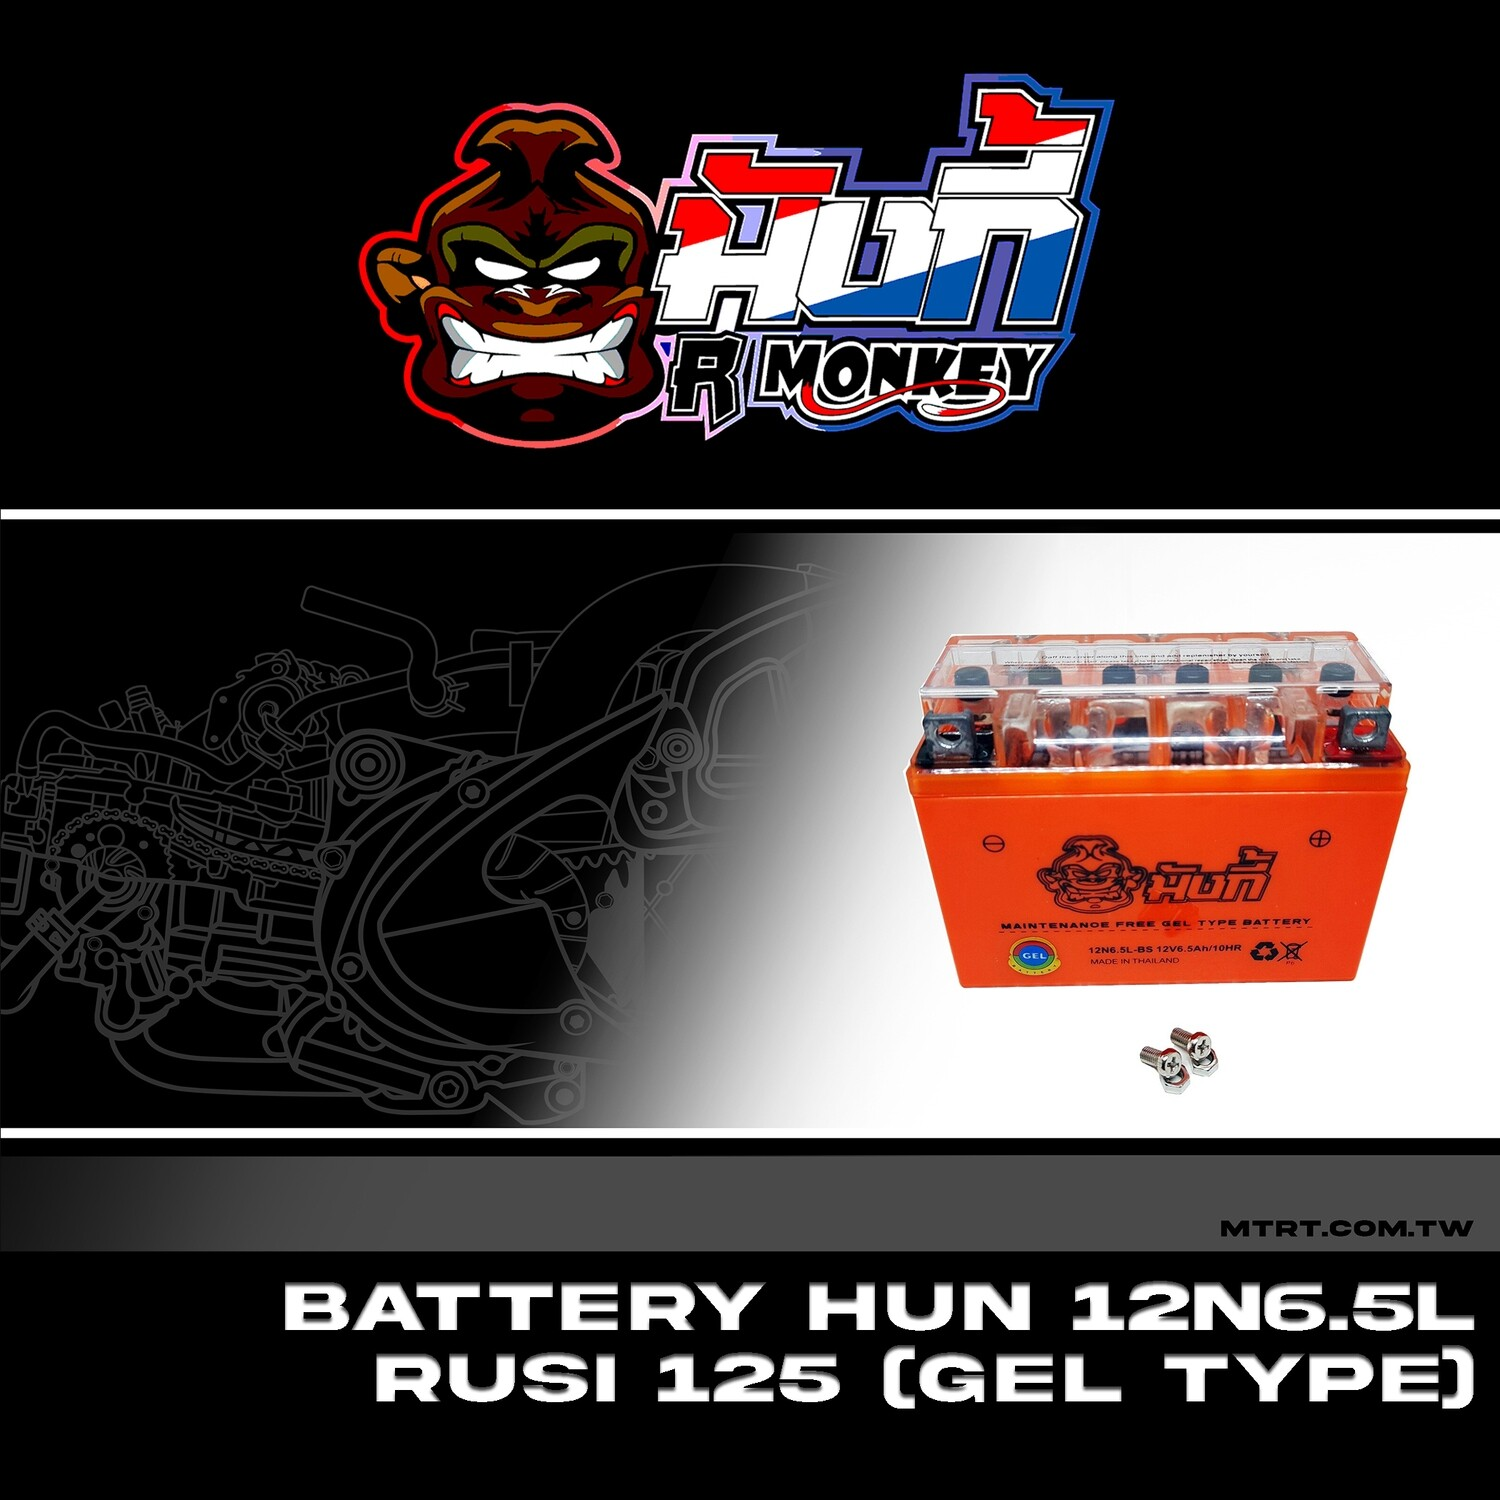 BATTERY  12N6.5L  (GEL TYPE) RUSi125